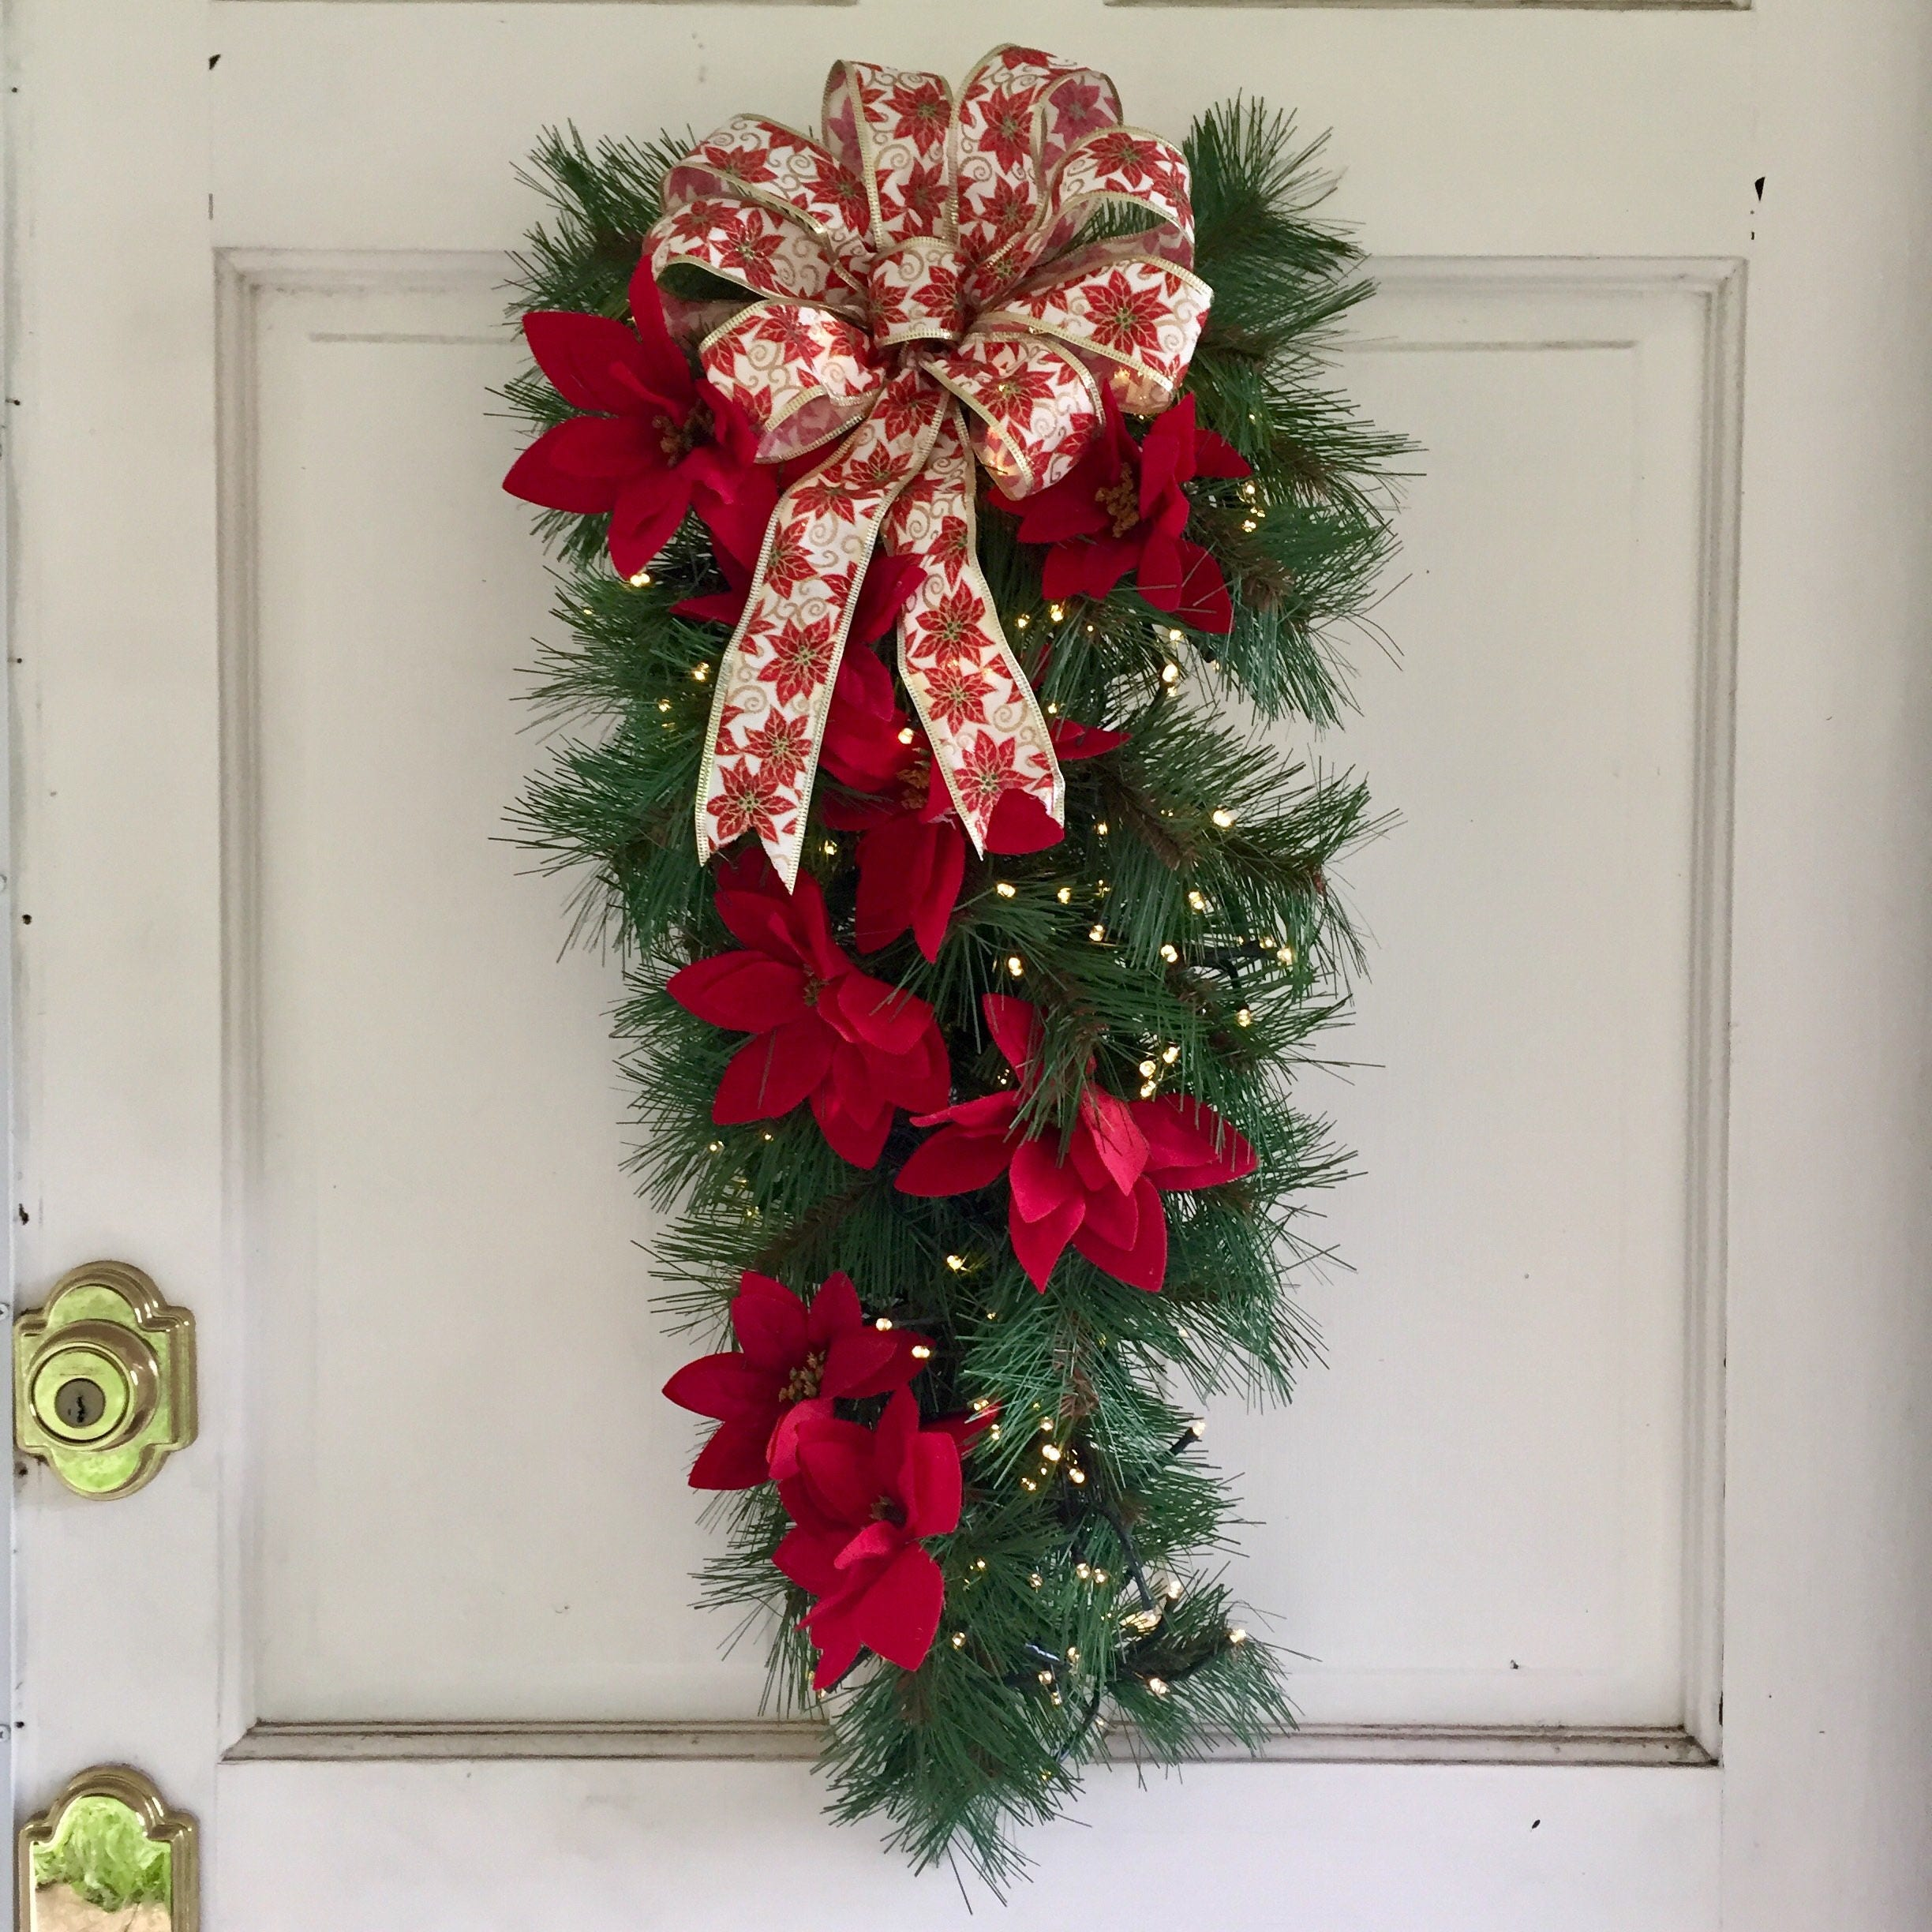 lighted christmas wreath faux pine swag wred poinsettias white red poinsettias bow christmas wreaths for front door 26 inch